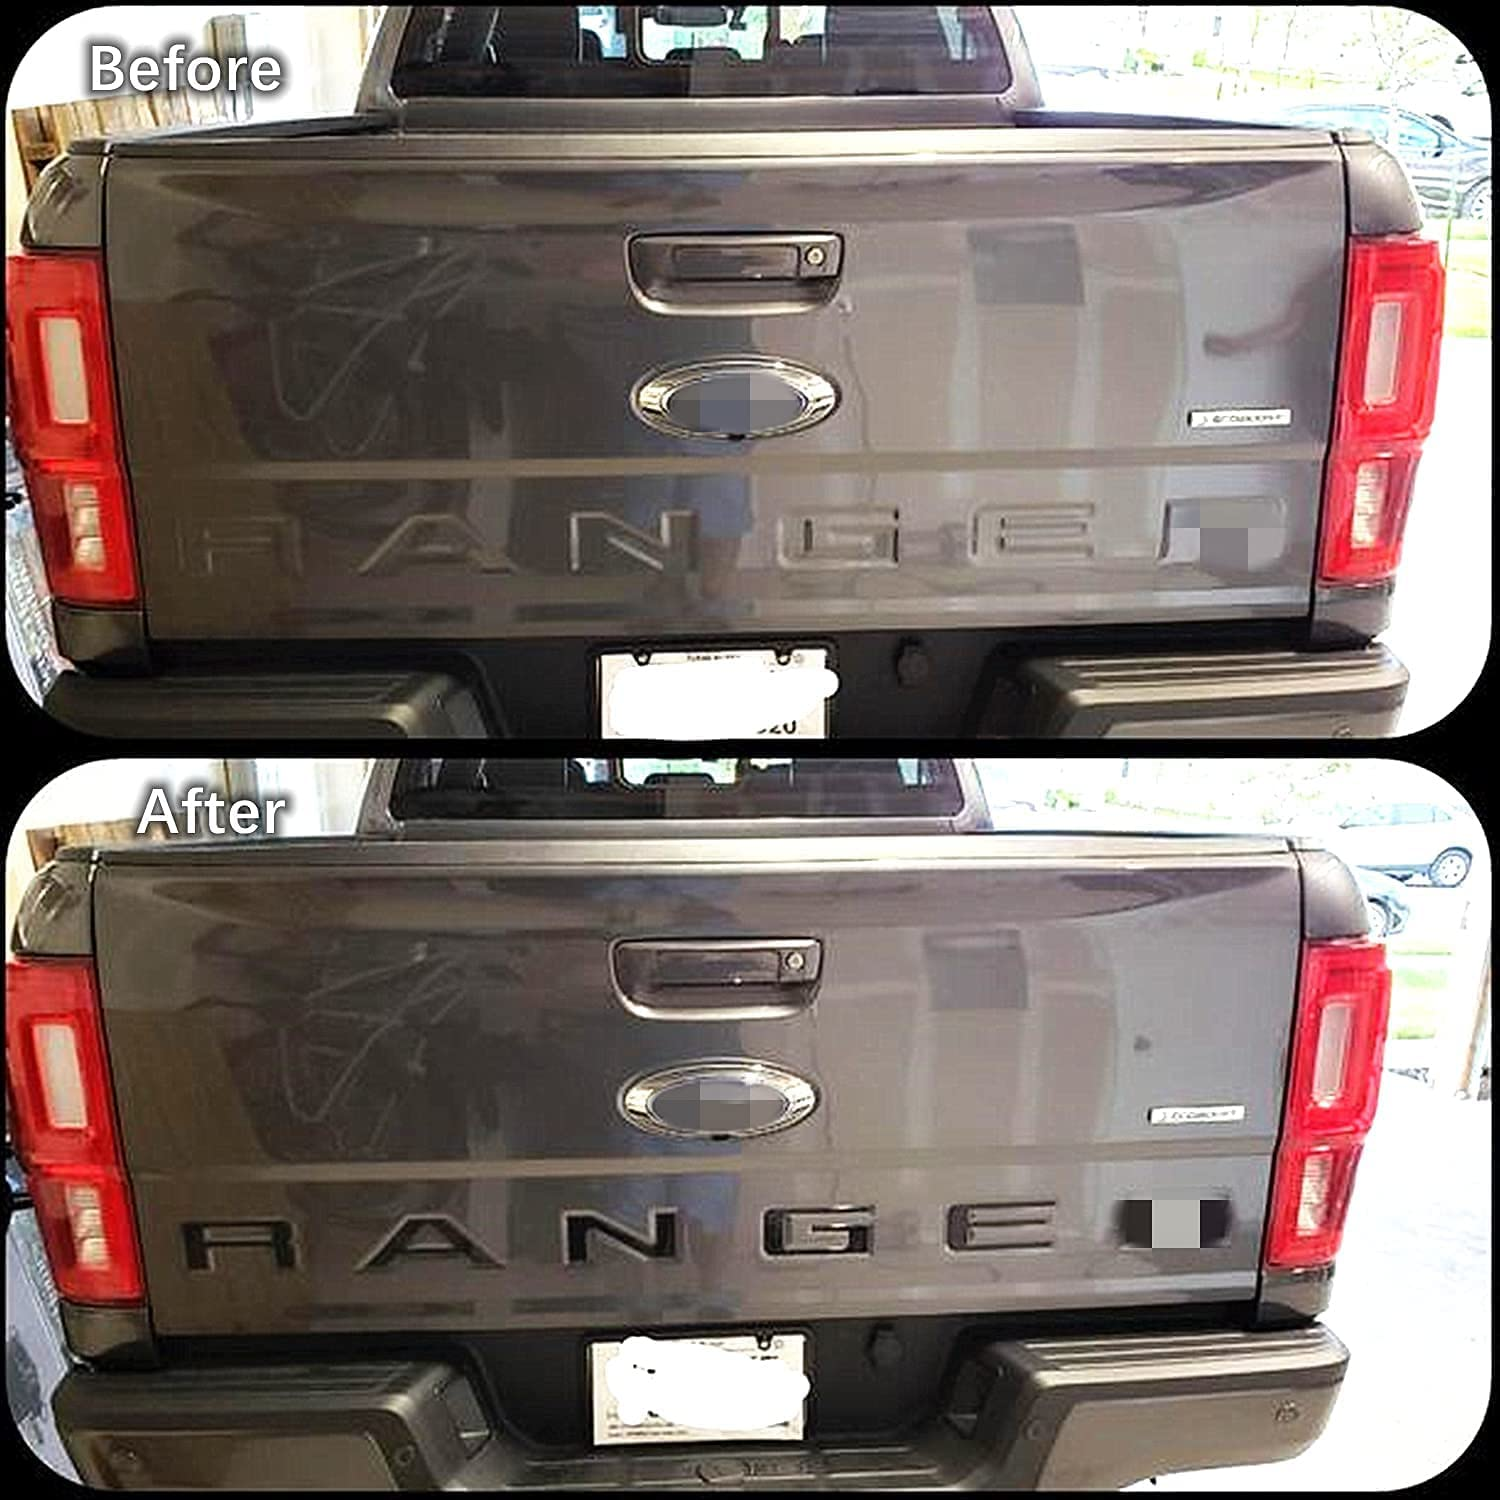 Tailgate Inserts Letters Compatible for Ranger 2019 2020 2021 Accessories Rear Inlays Emblem Decals (Matte Black)